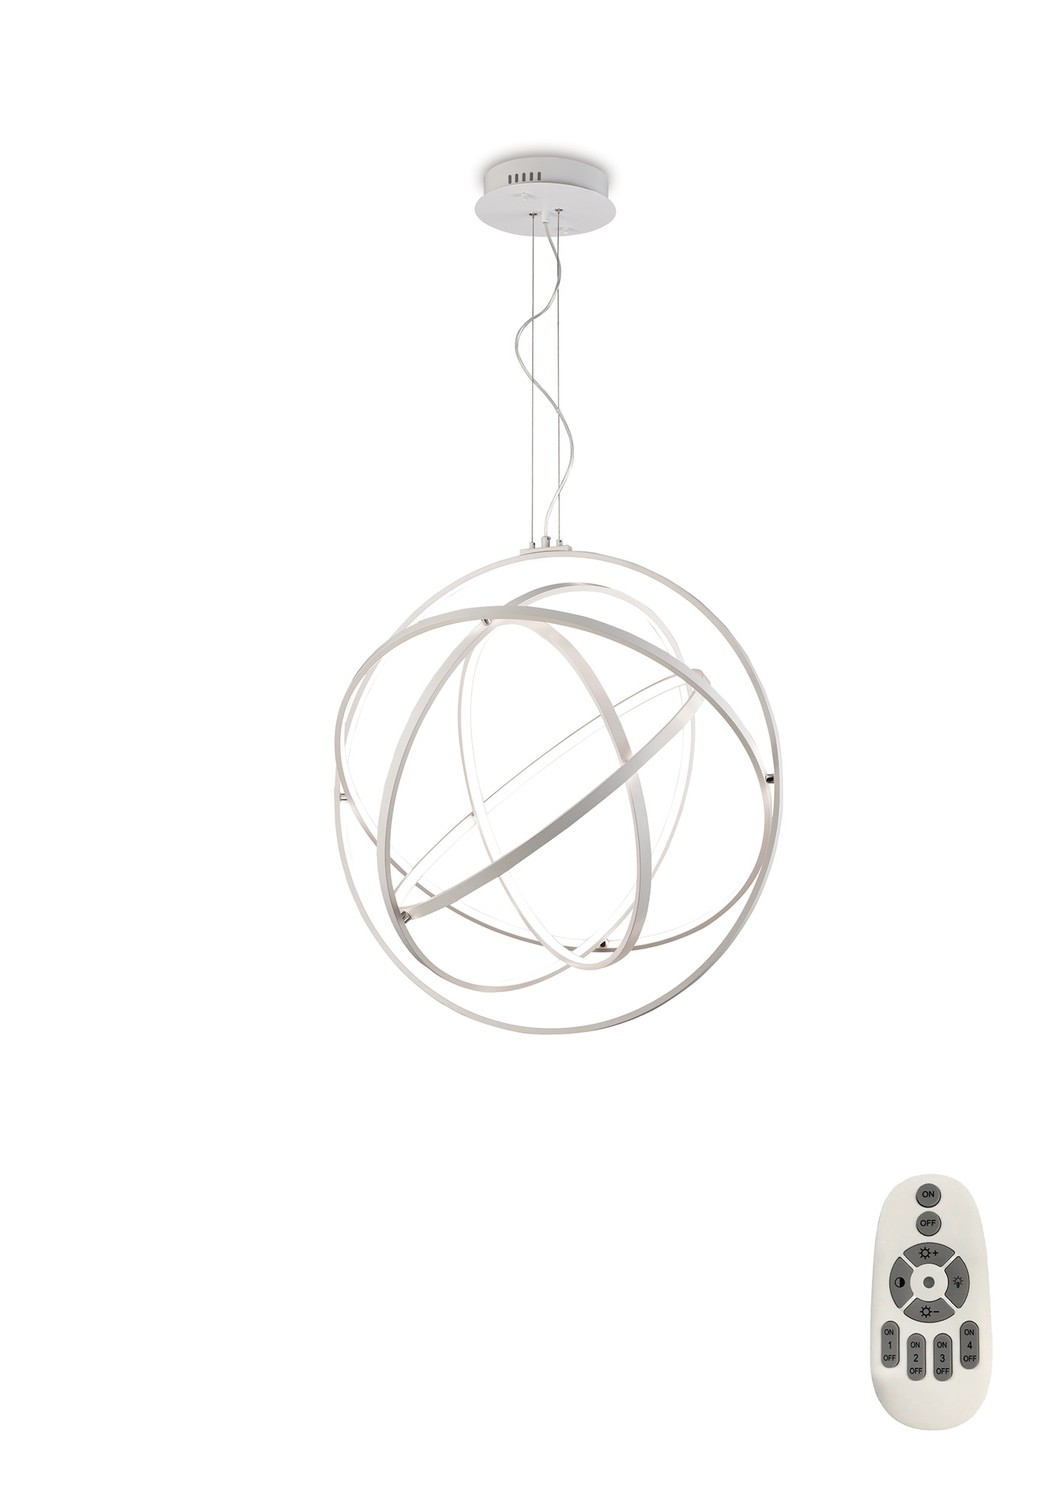 Mantra M5740 Orbital Pendant Round 80cm, 5 Ring, 130W LED 3000K, 4250lm, RF Remote Control White, 3yrs Warranty